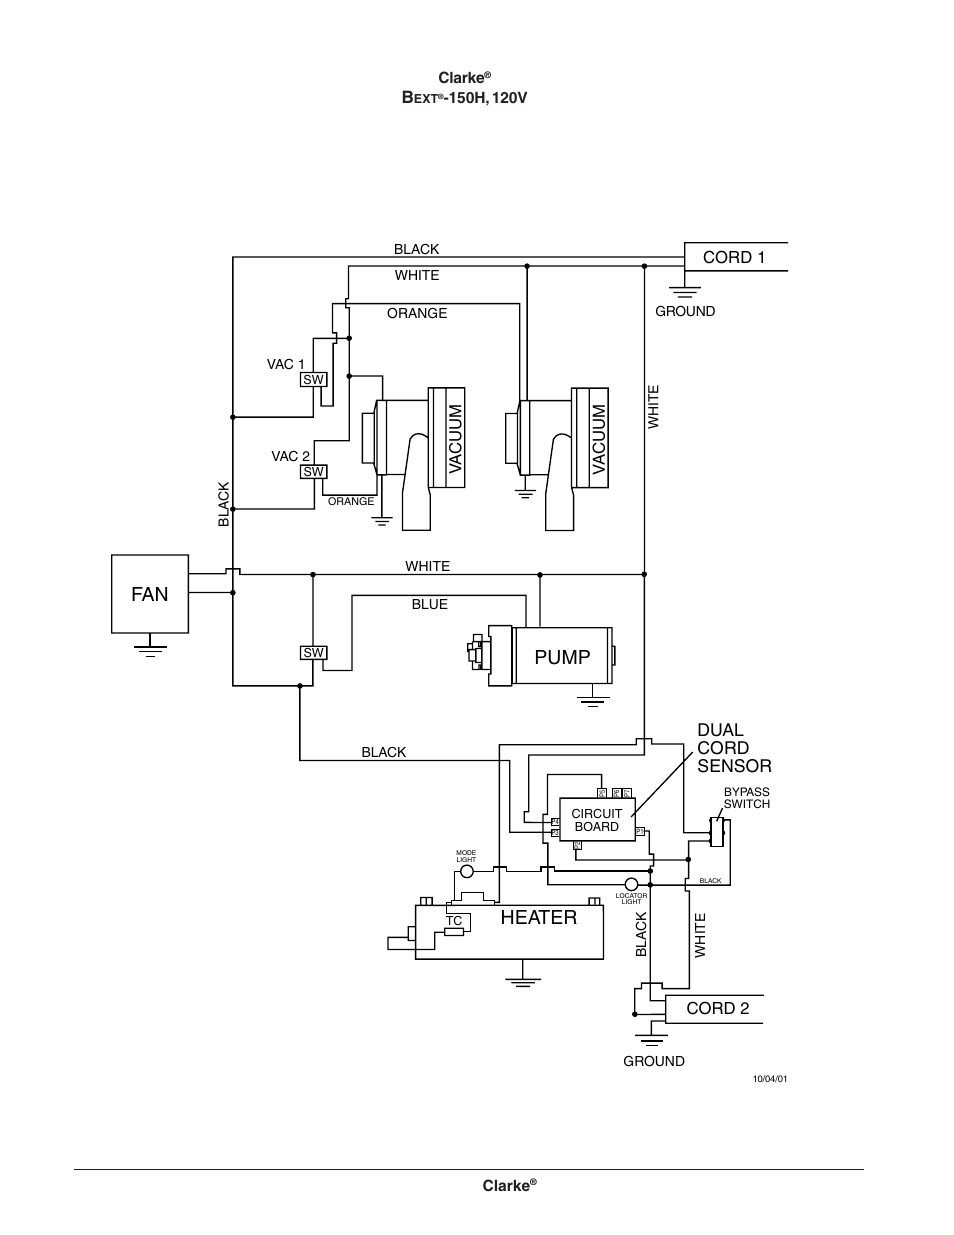 120vac Generator Wiring Diagram Detailed Schematics Clarke List Of Schematic Circuit U2022 Cord